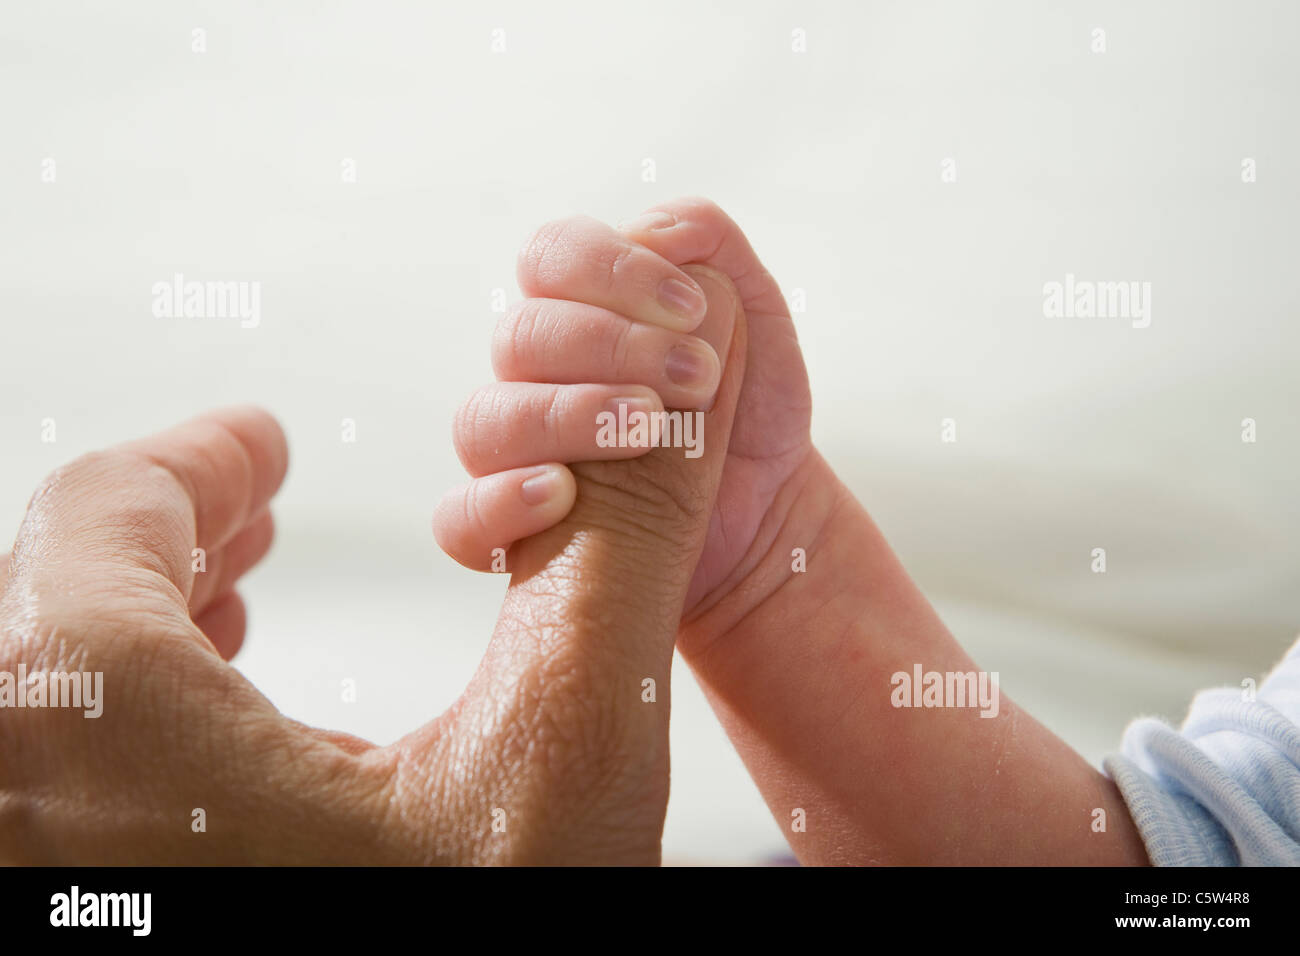 Father holding baby's hand, close-up - Stock Image